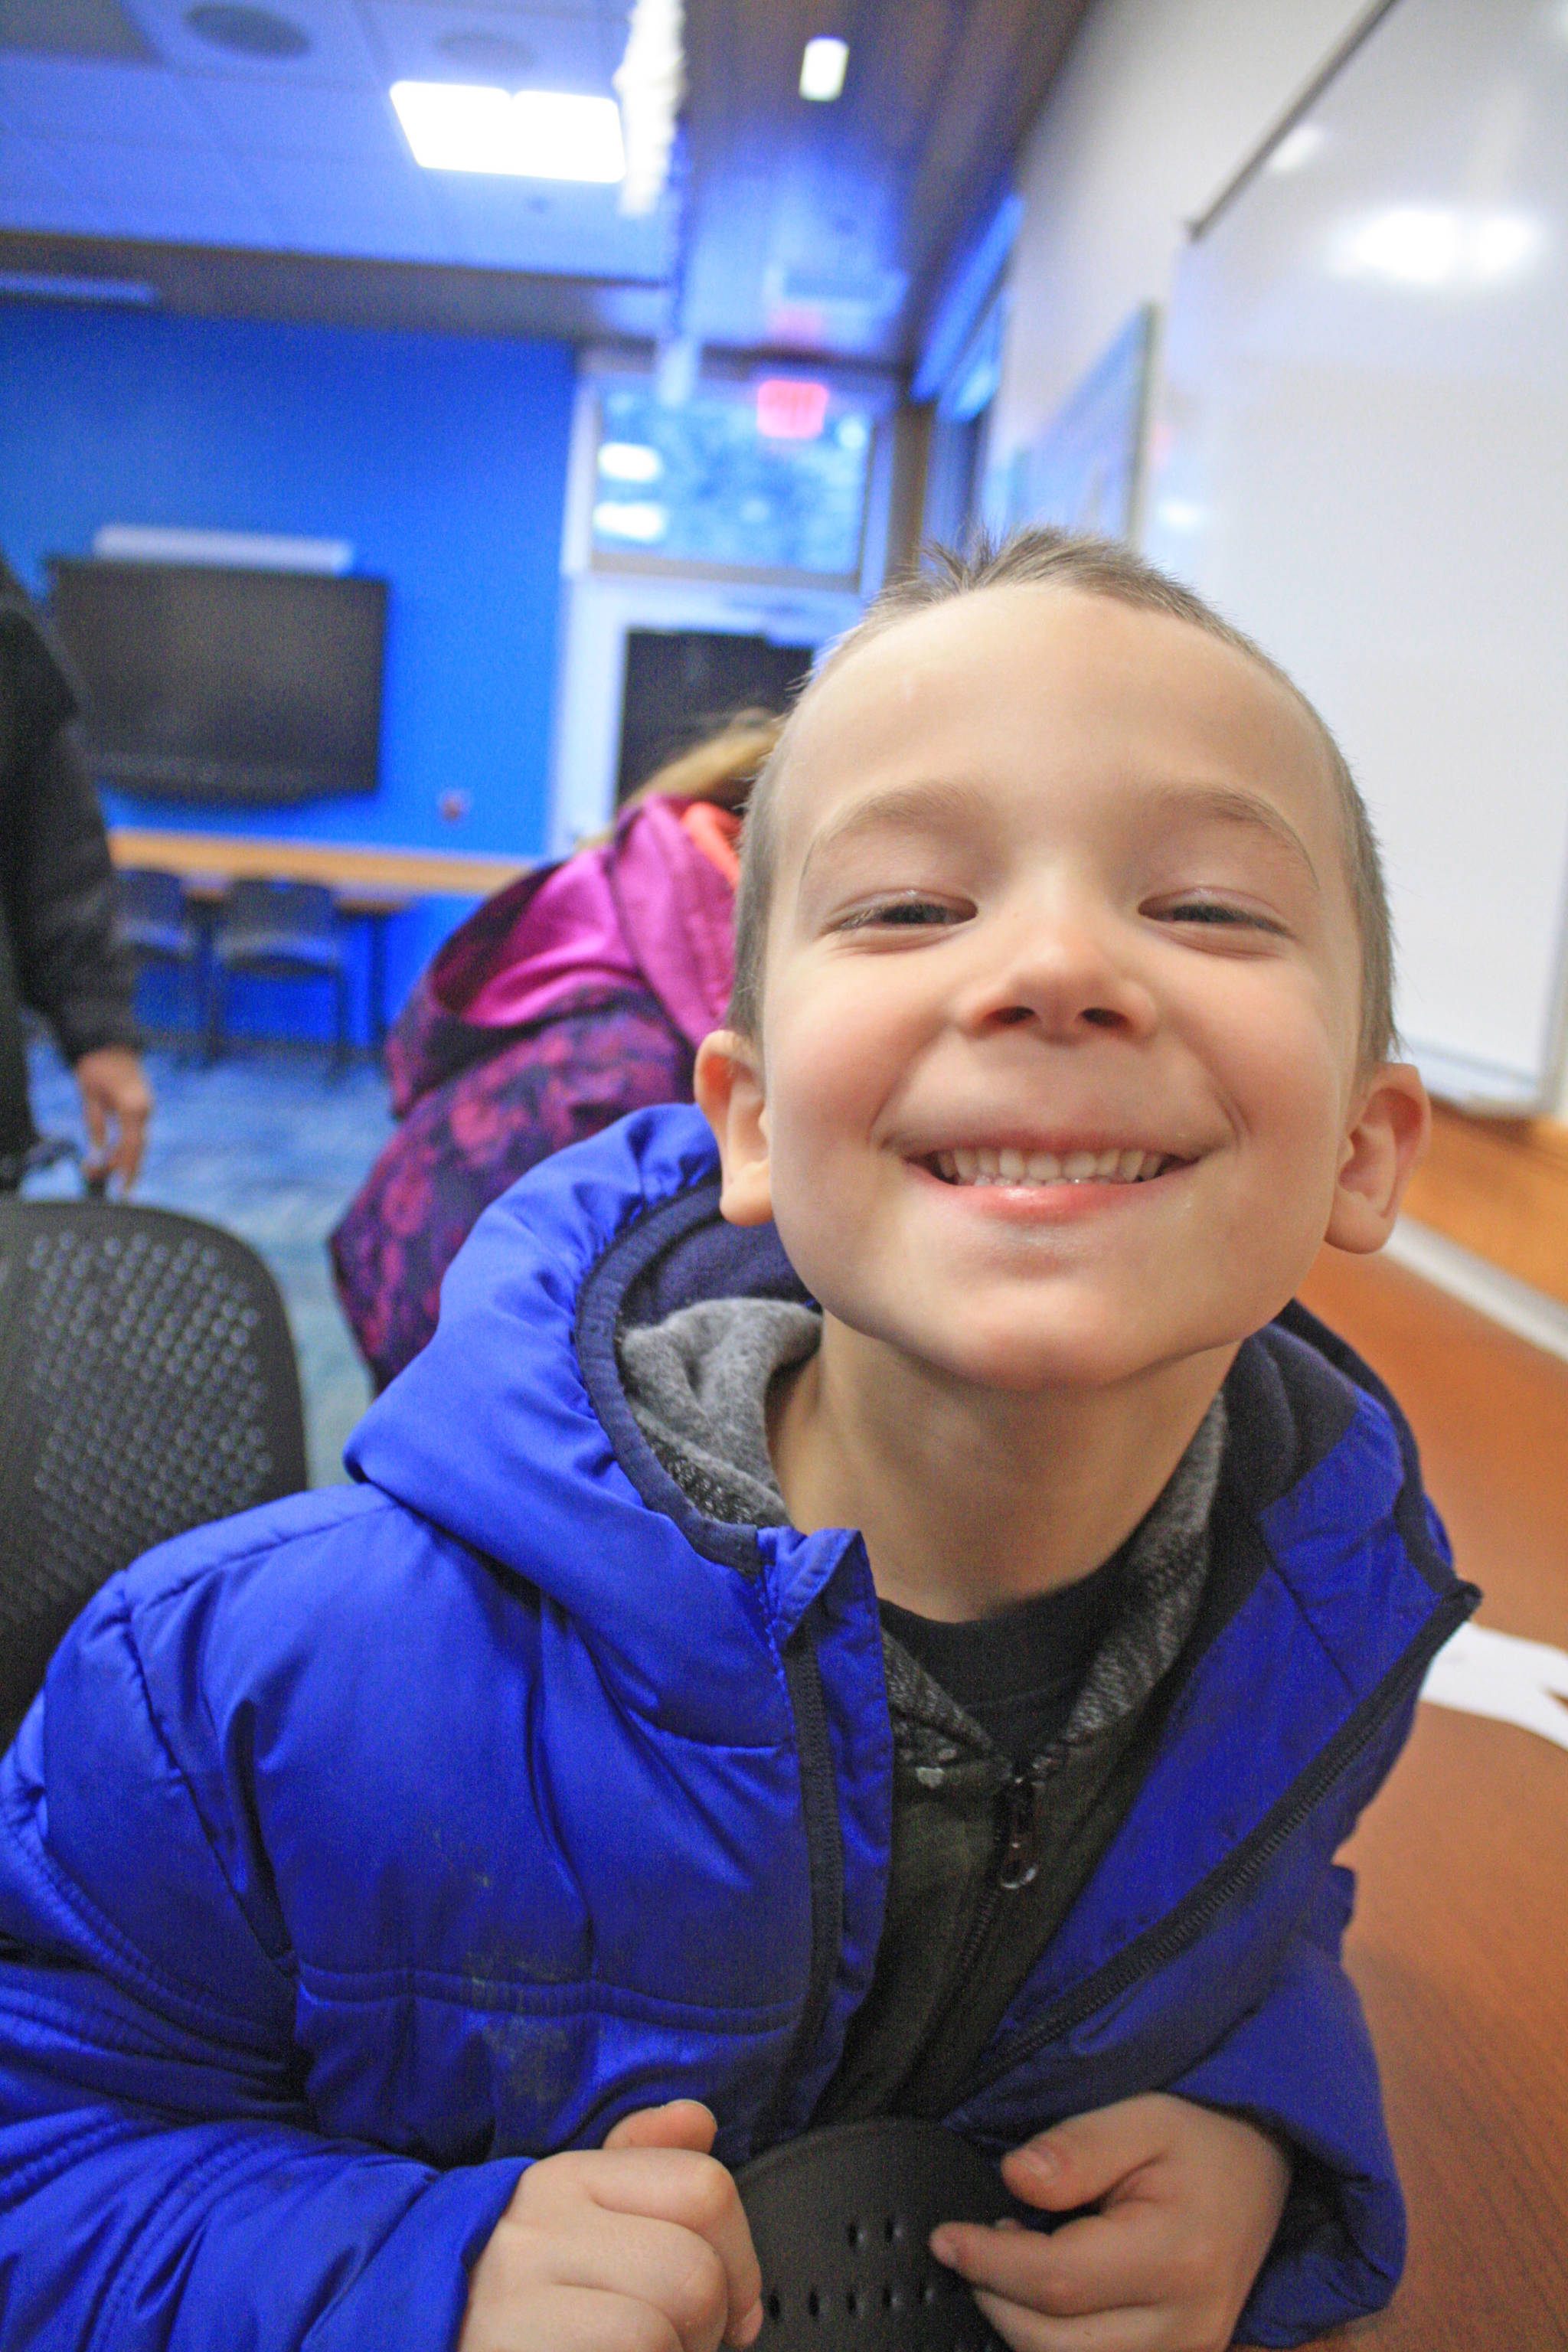 Phillip Larson, 6, takes a break from crafts at the Kenai National Wildlife Refuge Visitor Center on Dec. 27. The visitor center hosted an afternoon of family-friendly activities. (Photo by Erin Thompson/Peninsula Clarion)